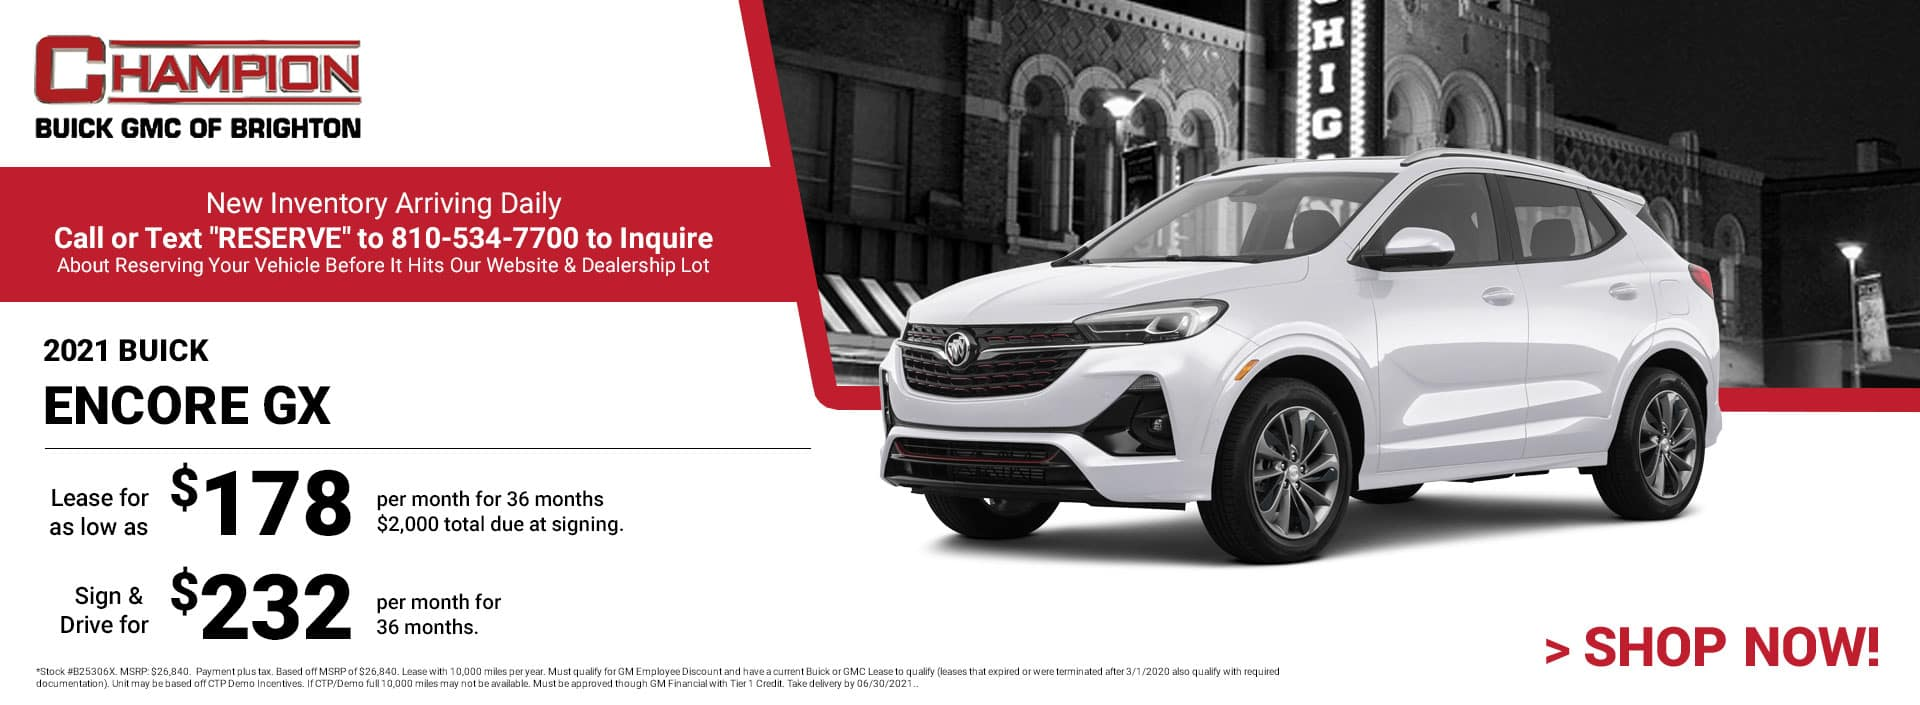 2021 Buick Encore GX- Lease for just: $178 per month for 36 months $2,000 total due at signing. Sign & Drive for $232 per month for 36 months.